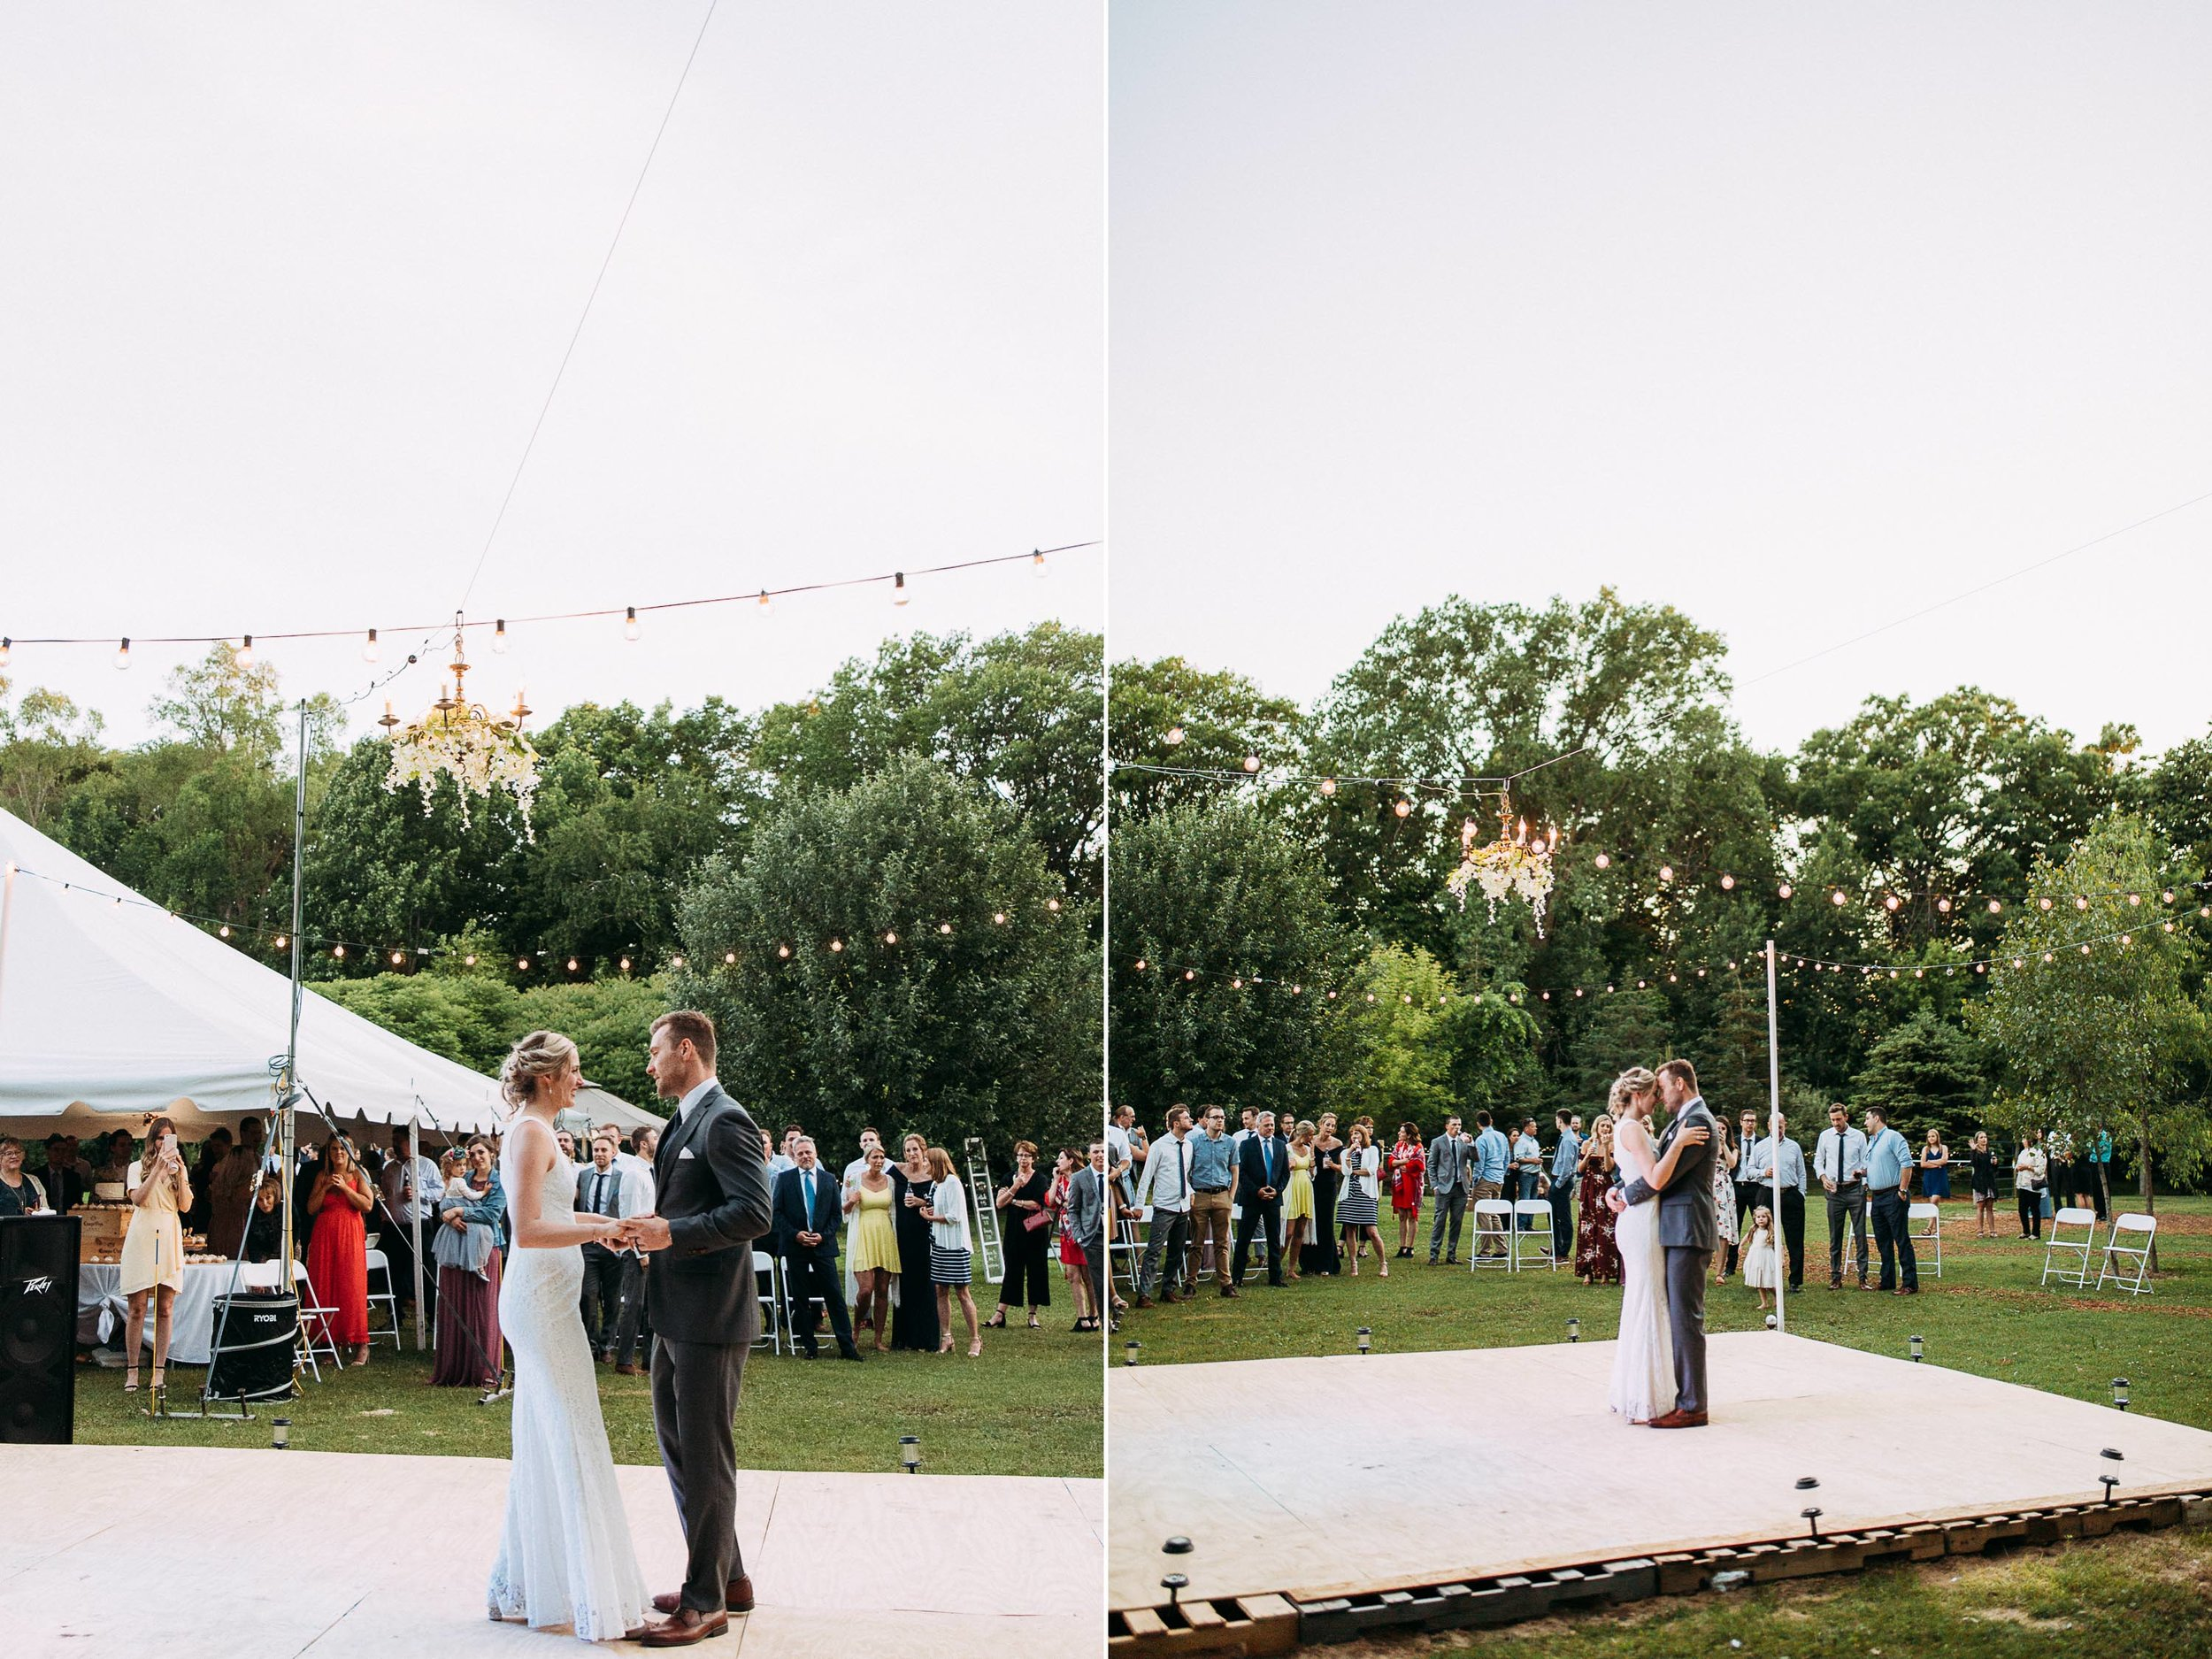 Carley_Trammell_GreenBay_Backyard_Wedding_Blog-105.jpg